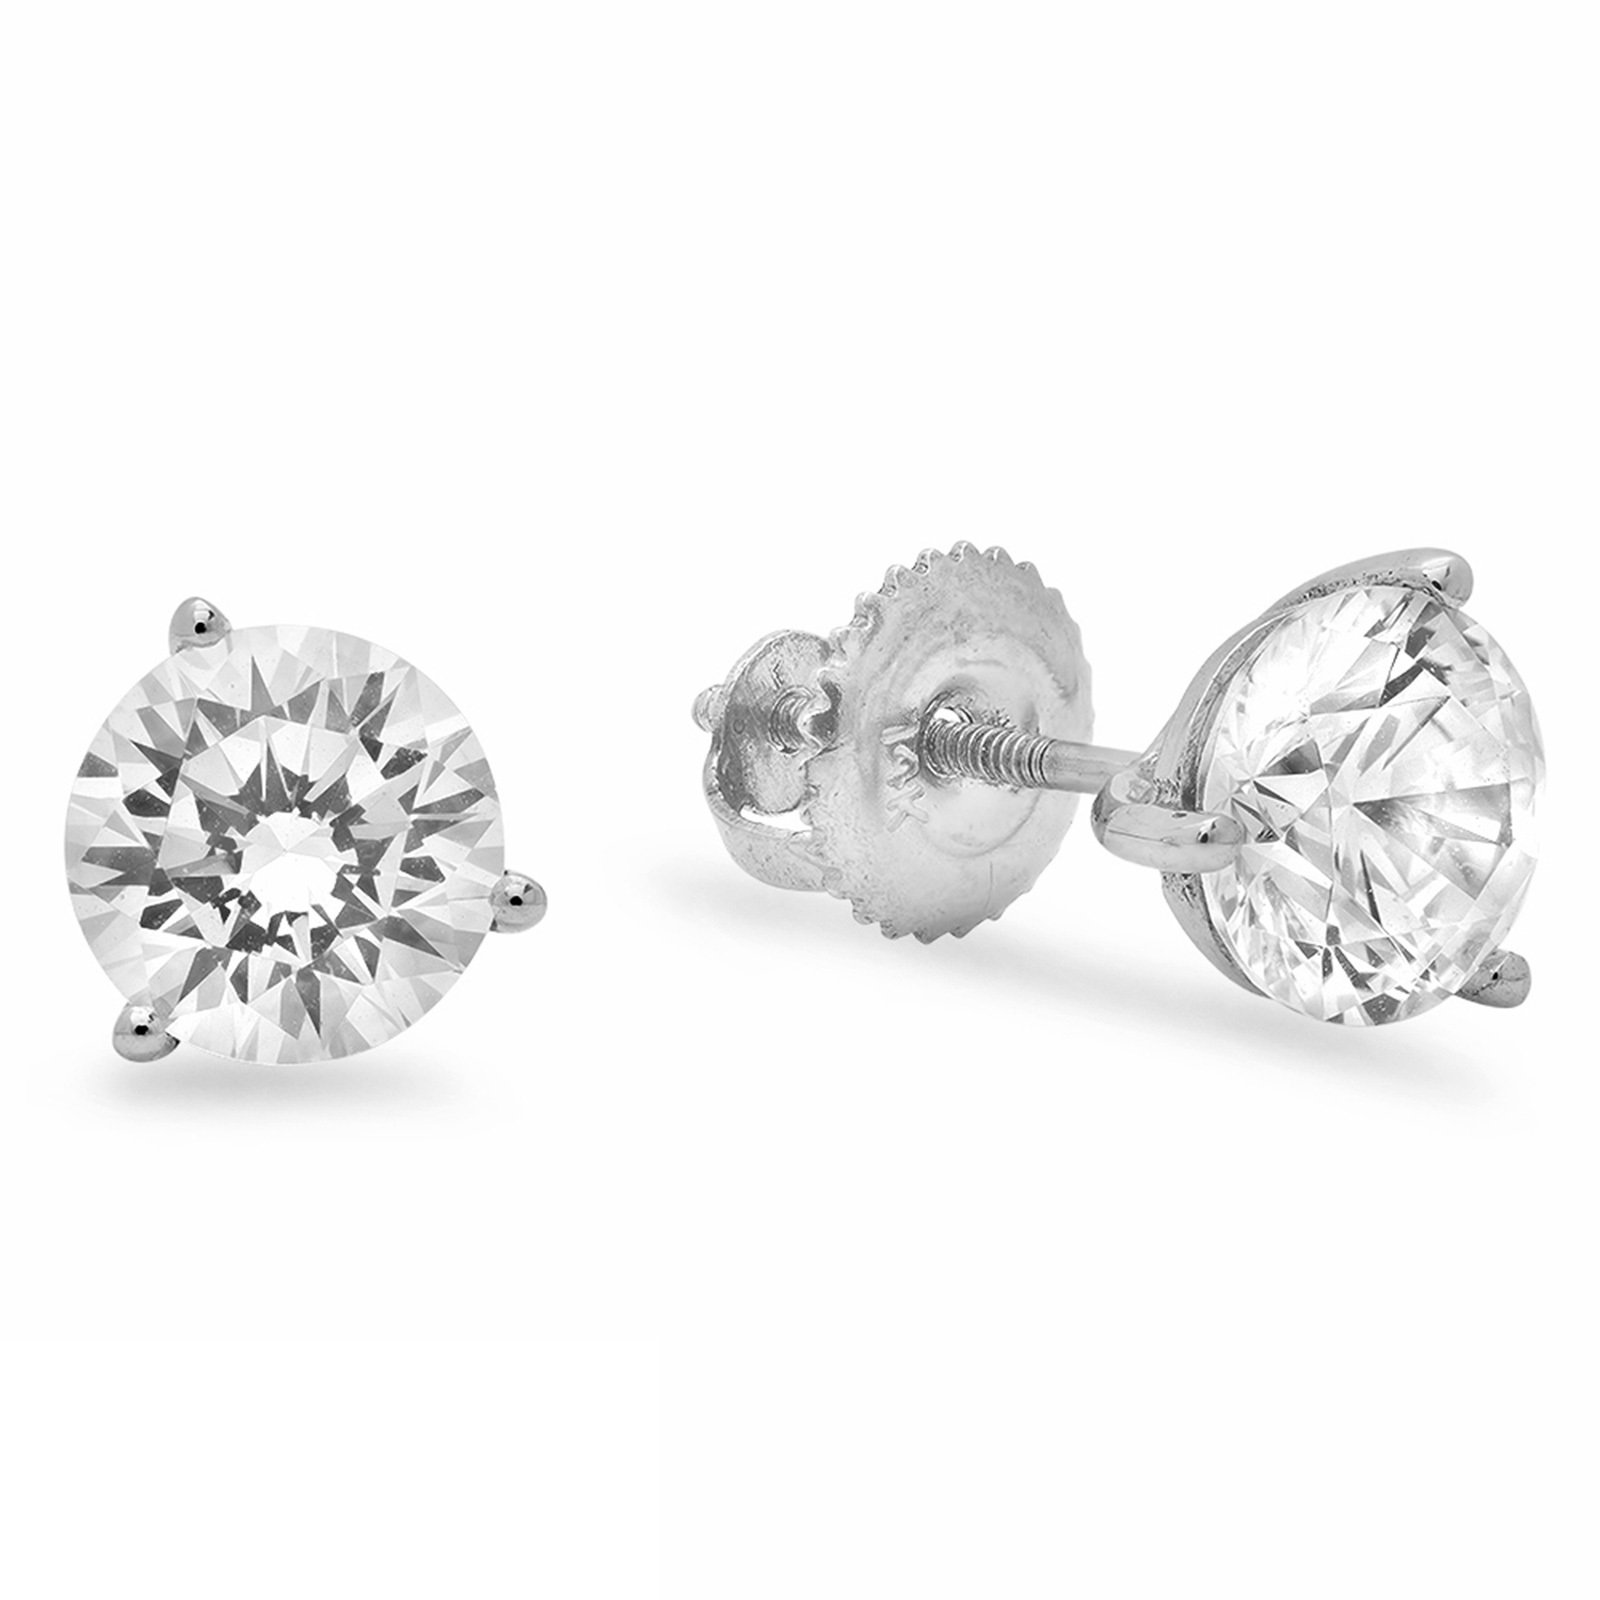 2.0 ct Round Cut Simulated Diamond CZ Solitaire Martini Style Stud Earrings in 14k White Gold Screw Back